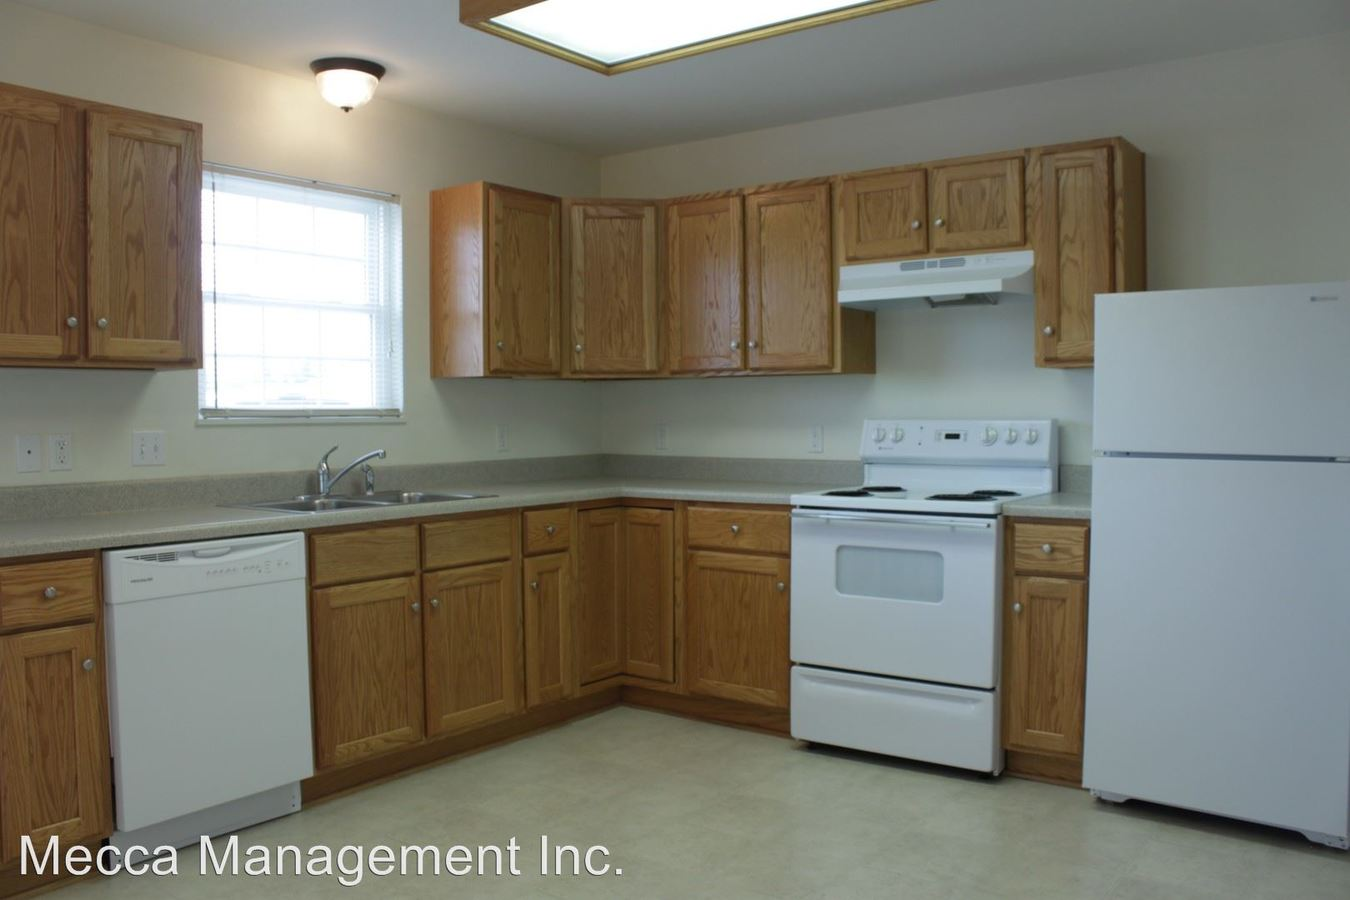 2 Bedrooms 1 Bathroom Apartment for rent at 7133-7159 Triumph Lane 7078-7106,29030-29096 Winners Circle in Perrysburg, OH